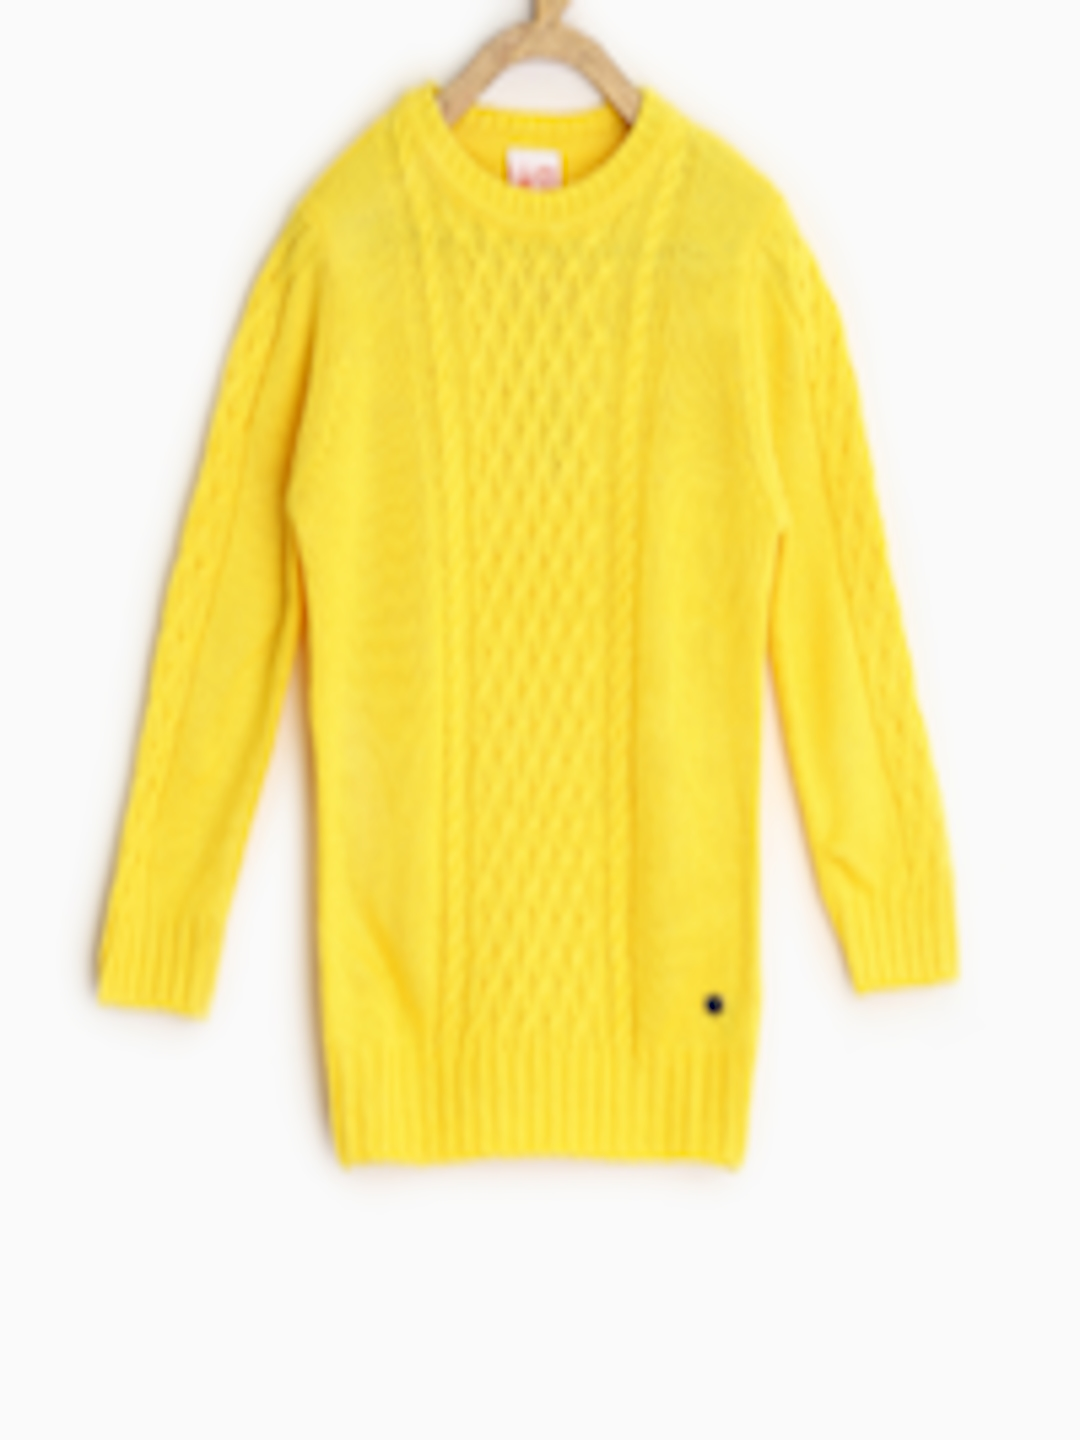 Buy FS Mini Klub Girls Yellow Sweater - Sweaters for Girls 983114 ...